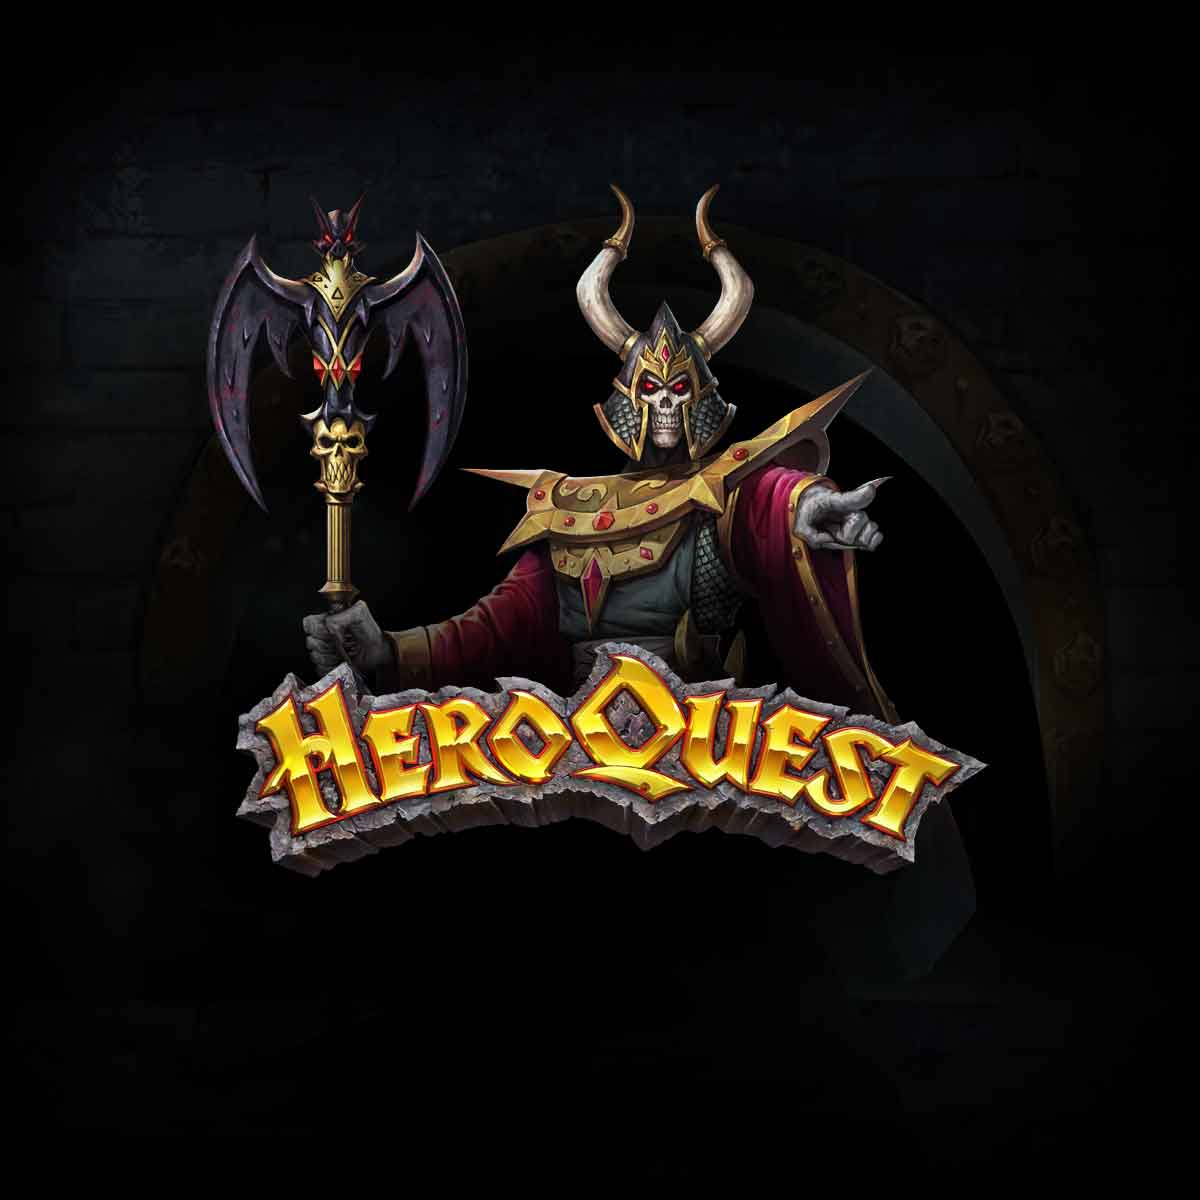 Remember #HeroQuest from the #80s? There's a #countdown timer set to go off in a few days. What could it mean...? 👉 https://t.co/YzsMyW5jIb  🕑 ❓ #GamesWorkshop #AvalonHill #WizardsOfTheCoast #WotC #Hasbro #RPG #Wargaming #Miniatures  @Wizards @Hasbro https://t.co/oMZs9ylnyo